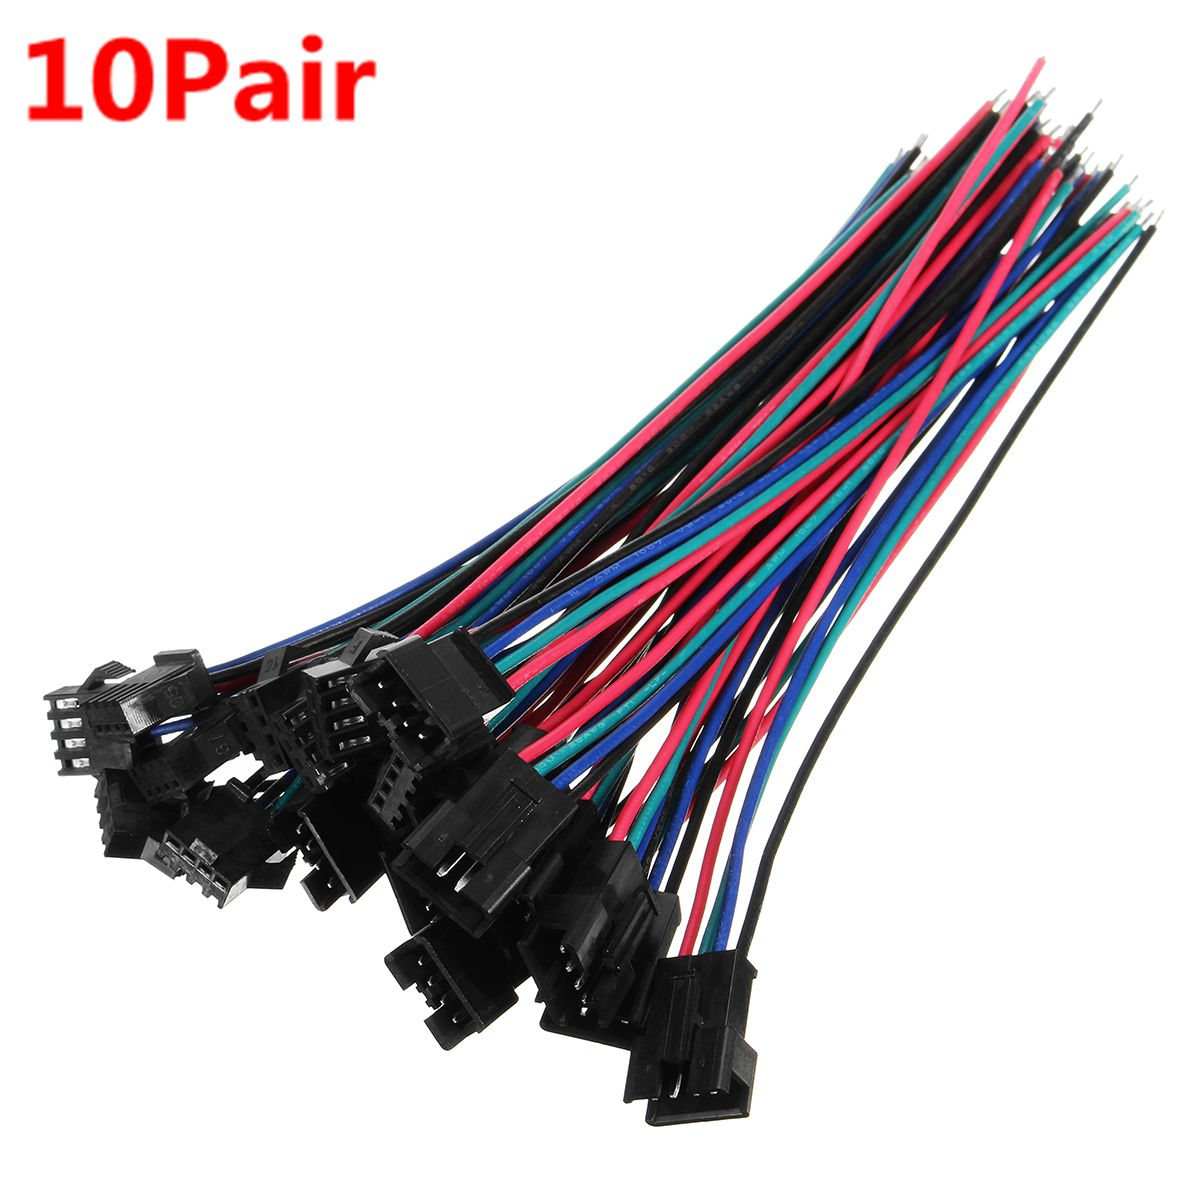 Excellway® 10 sets JST 15cm SM 4Pin 22AWG Wire Male and Female Connectors Wire Pitch 2.54mm